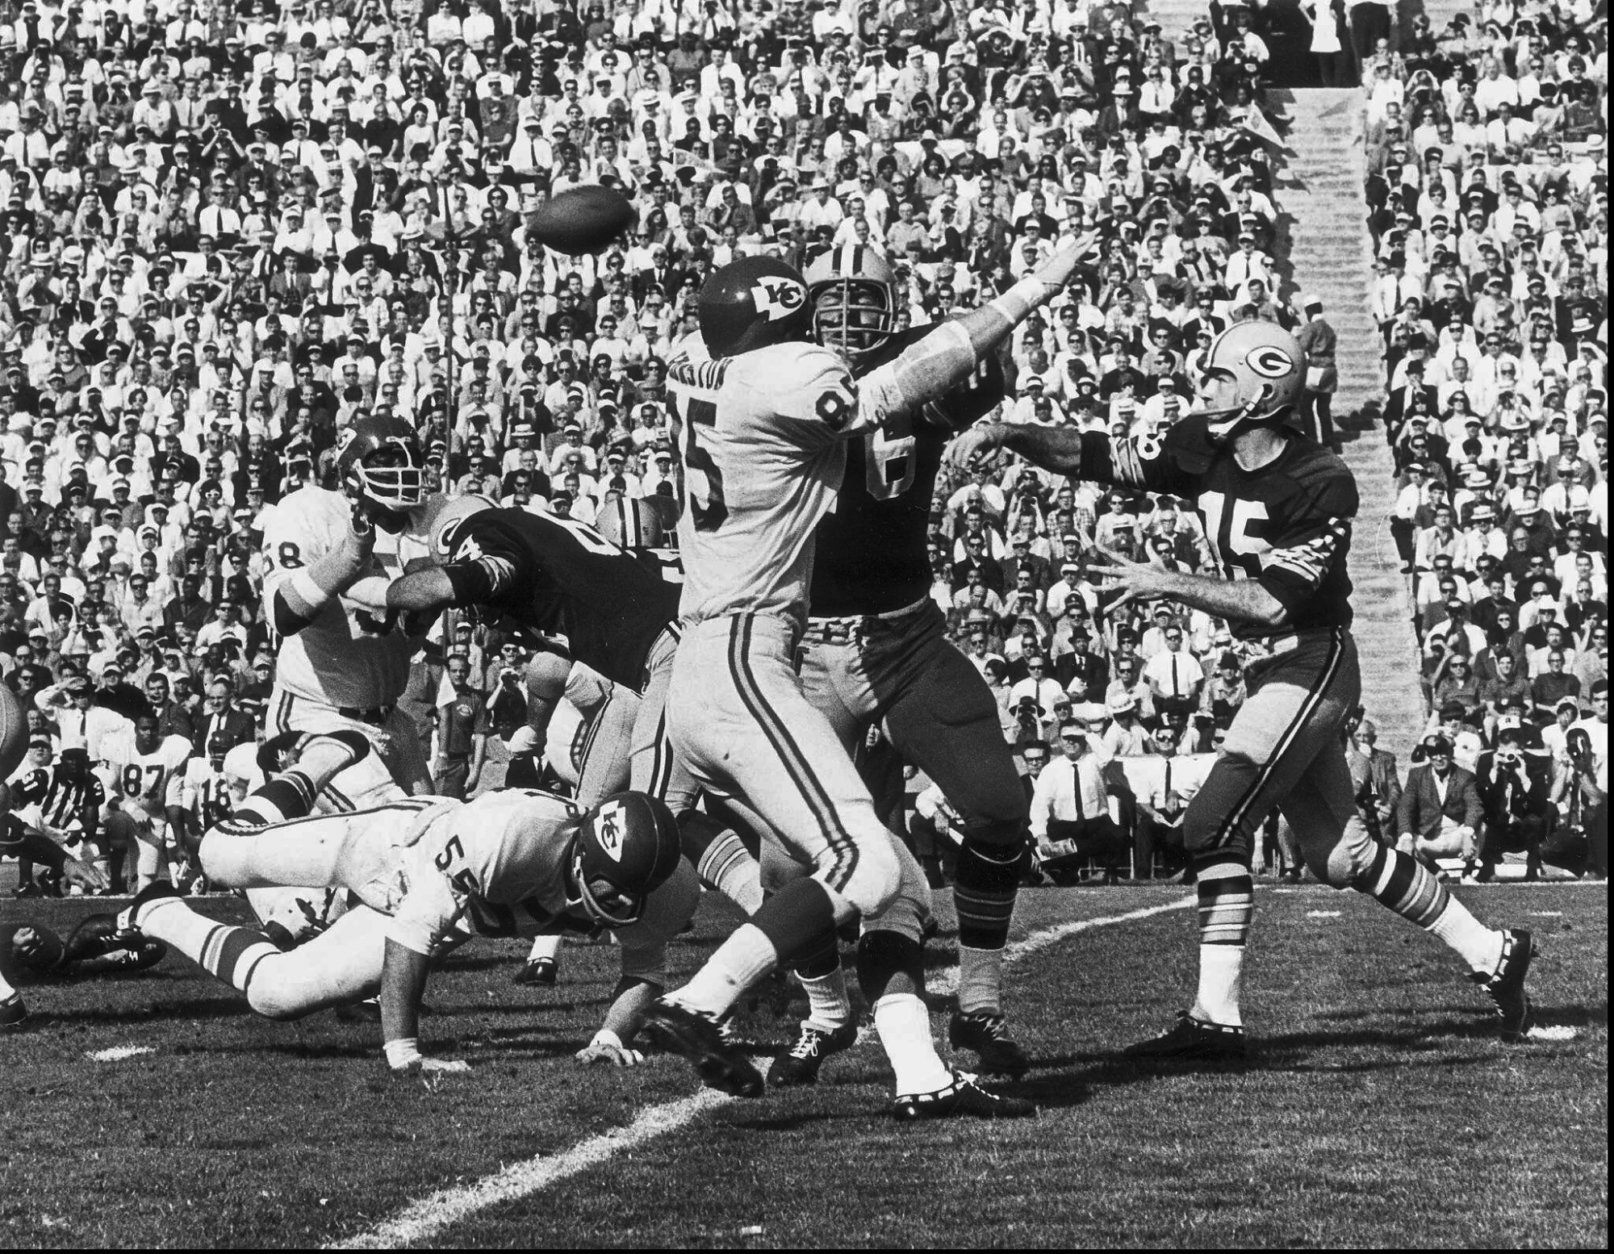 FILE - In this Jan. 16, 1967, file photo, Green Bay Packers quarterback Bart Starr, right, throws a pass during first quarter action during Super Bowl I against the Kansas City Chiefs, at the Los Angeles Coliseum. The Packers beat the Chiefs 35-10.  Starr, the Green Bay Packers quarterback and catalyst of Vince Lombardi's powerhouse teams of the 1960s, has died. He was 85. The Packers announced Sunday, May 26, 2019, that Starr had died, citing his family. He had been in failing health since suffering a serious stroke in 2014.  (AP Photo/Los Angeles Times)/Los Angeles Times via AP)